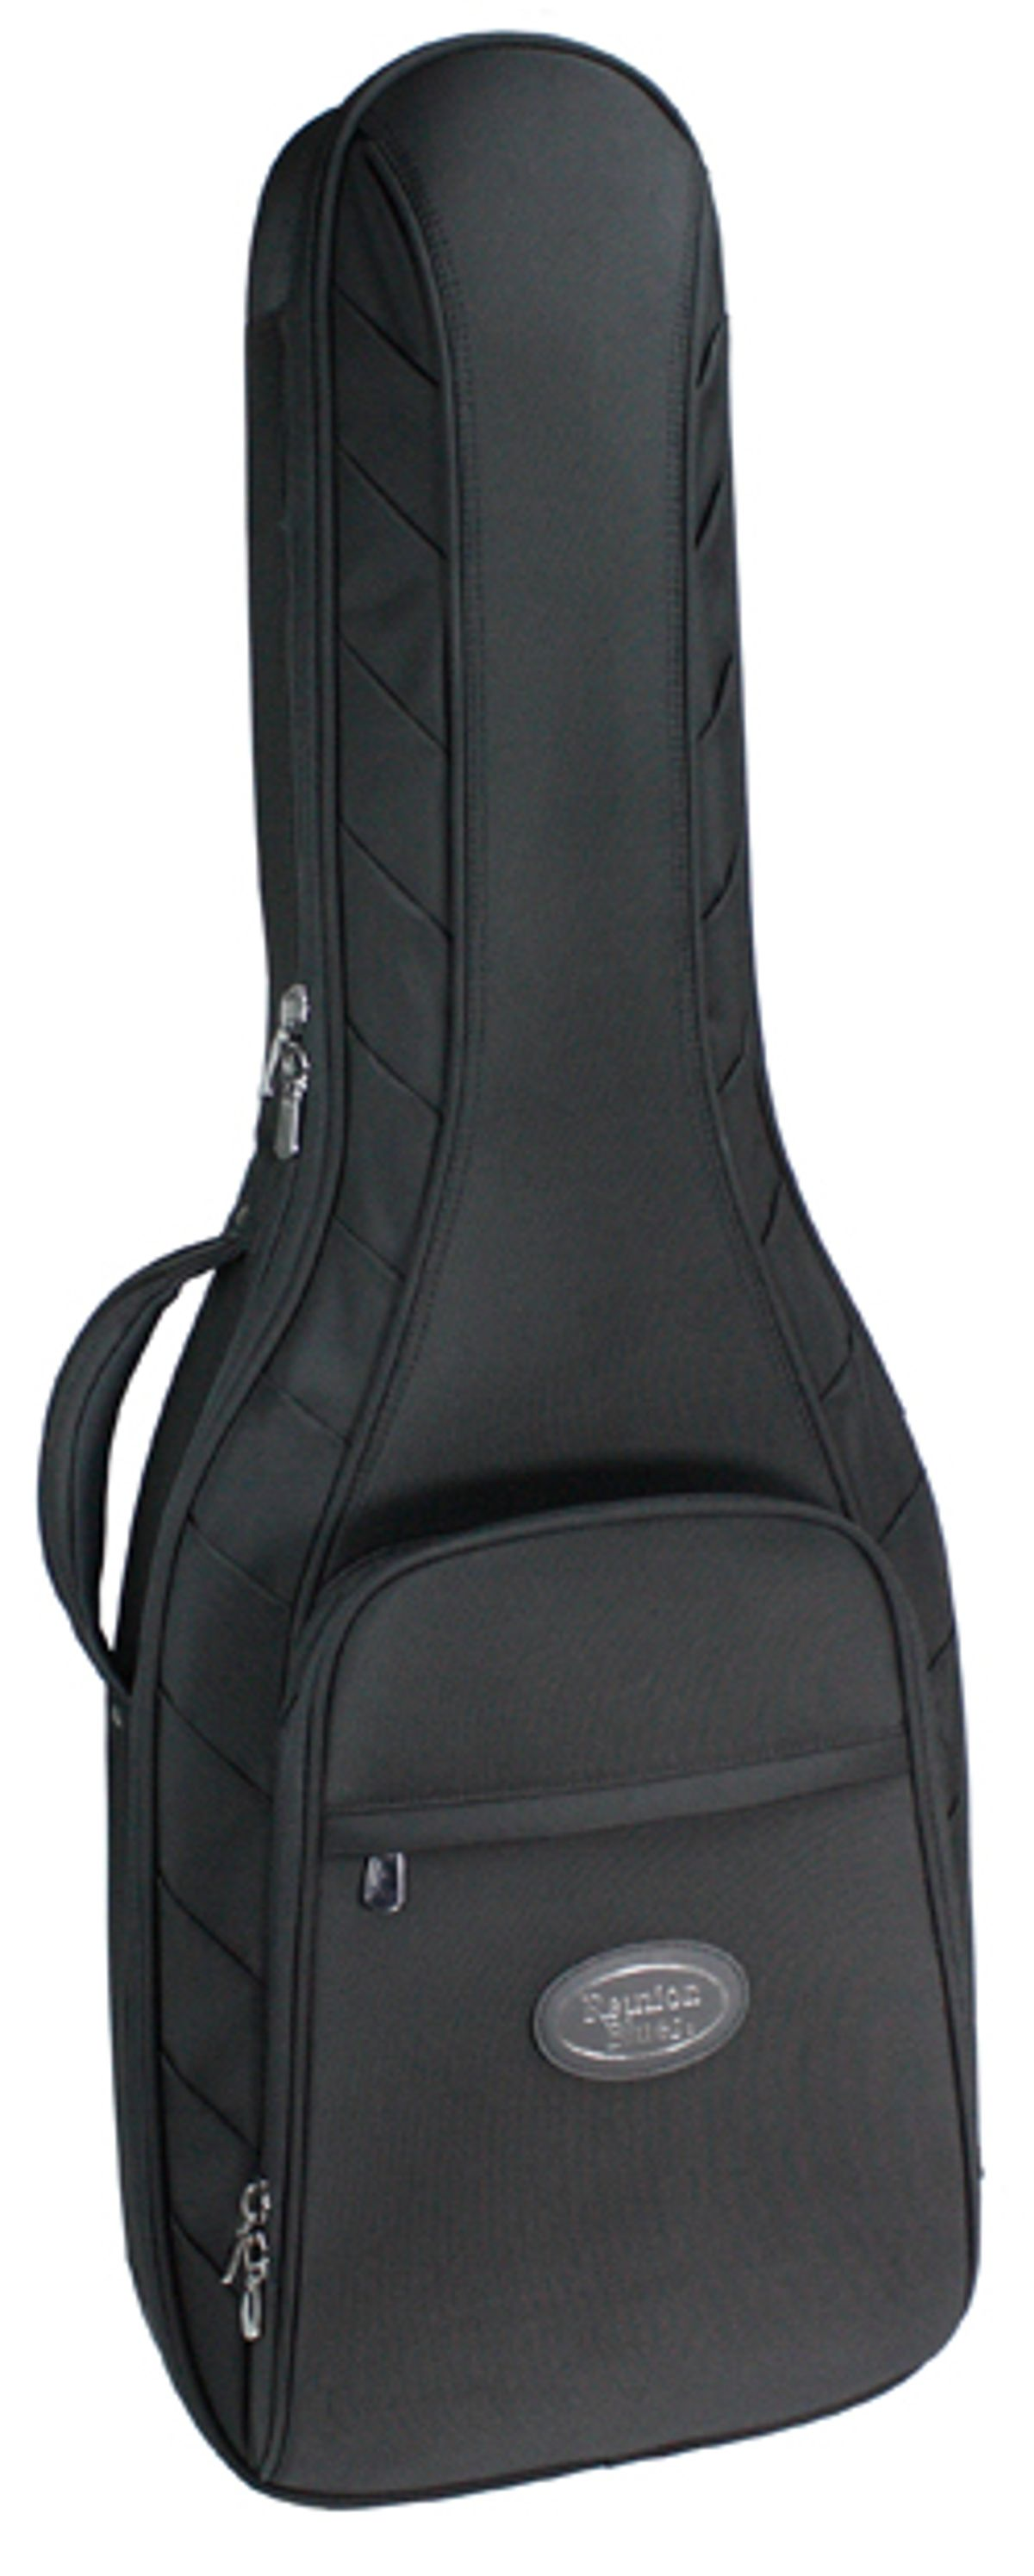 Reunion Blues Unveils Midnight Series Guitar and Bass RB Continental Cases